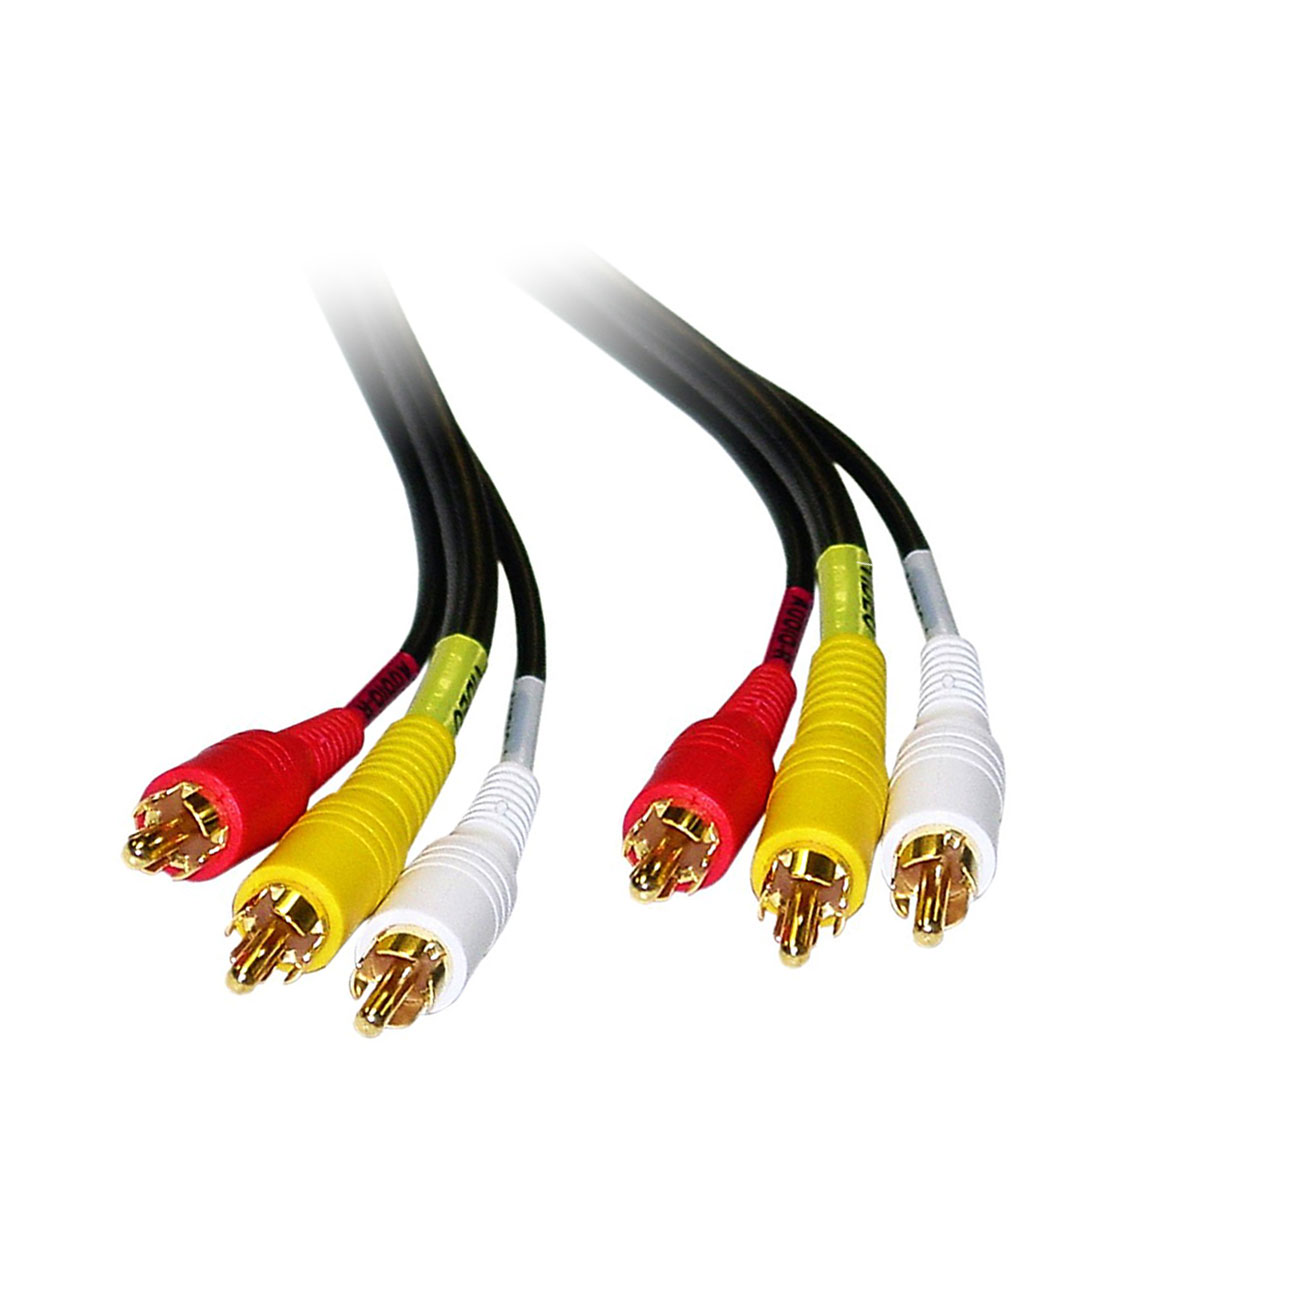 Stereo/VCR RCA Cable, 2 RCA (Audio) + RCA RG59 Video, Gold-plated Connectors, 25 Feet